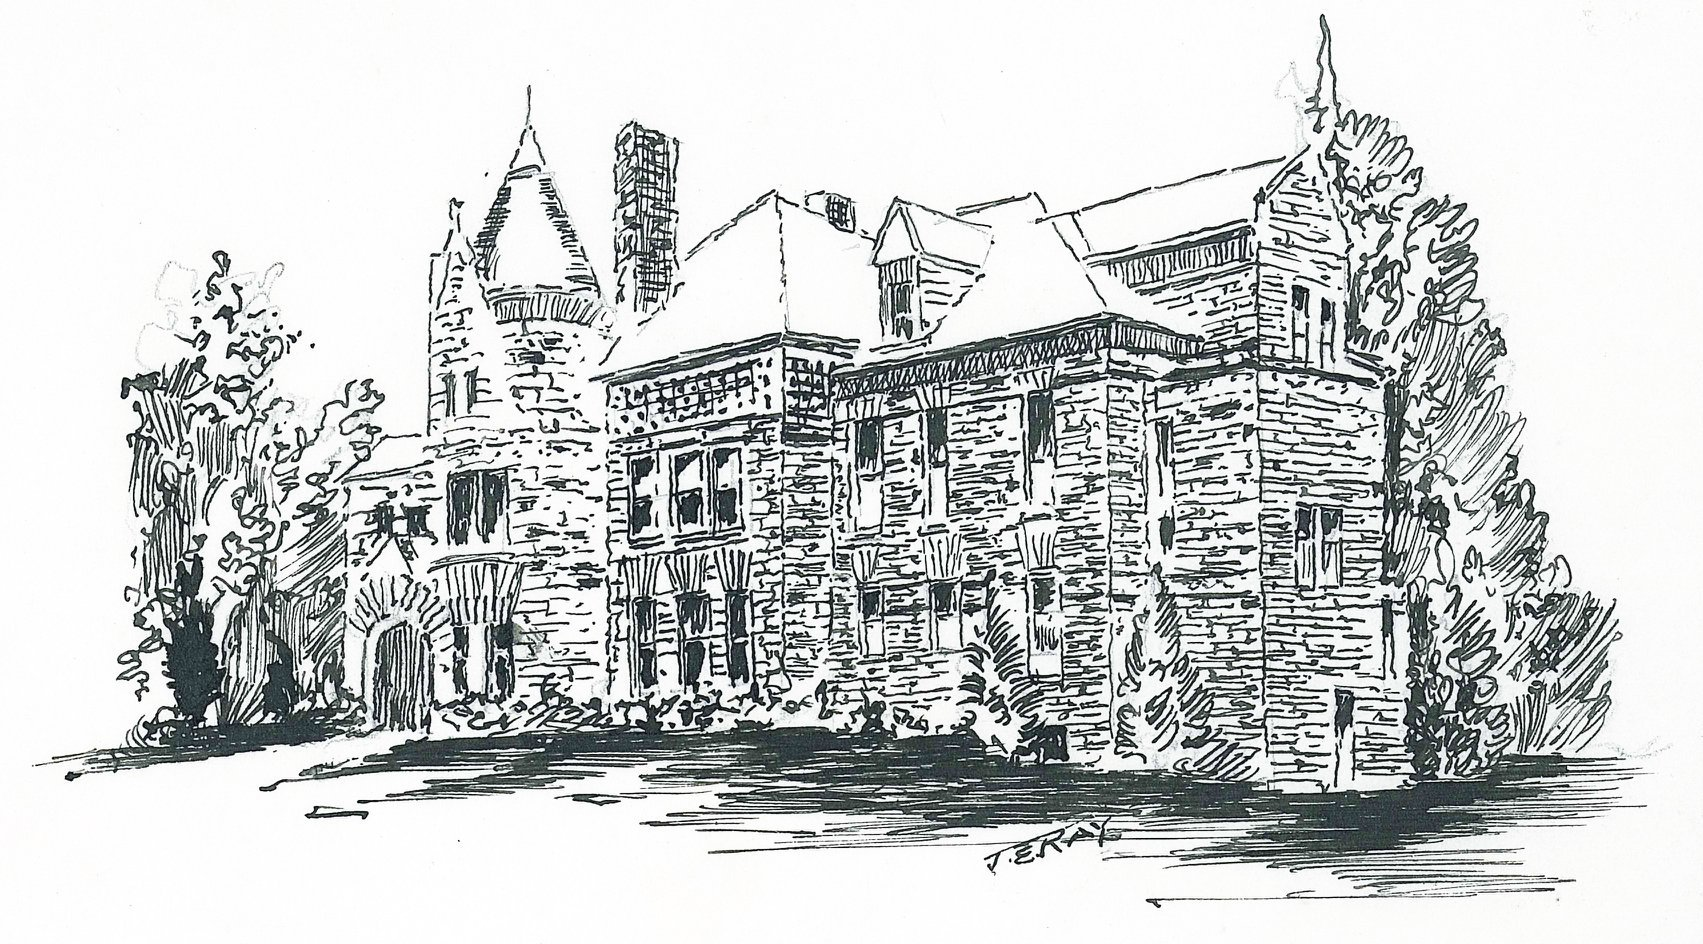 Coloring page of the Louis Smith Tainter House